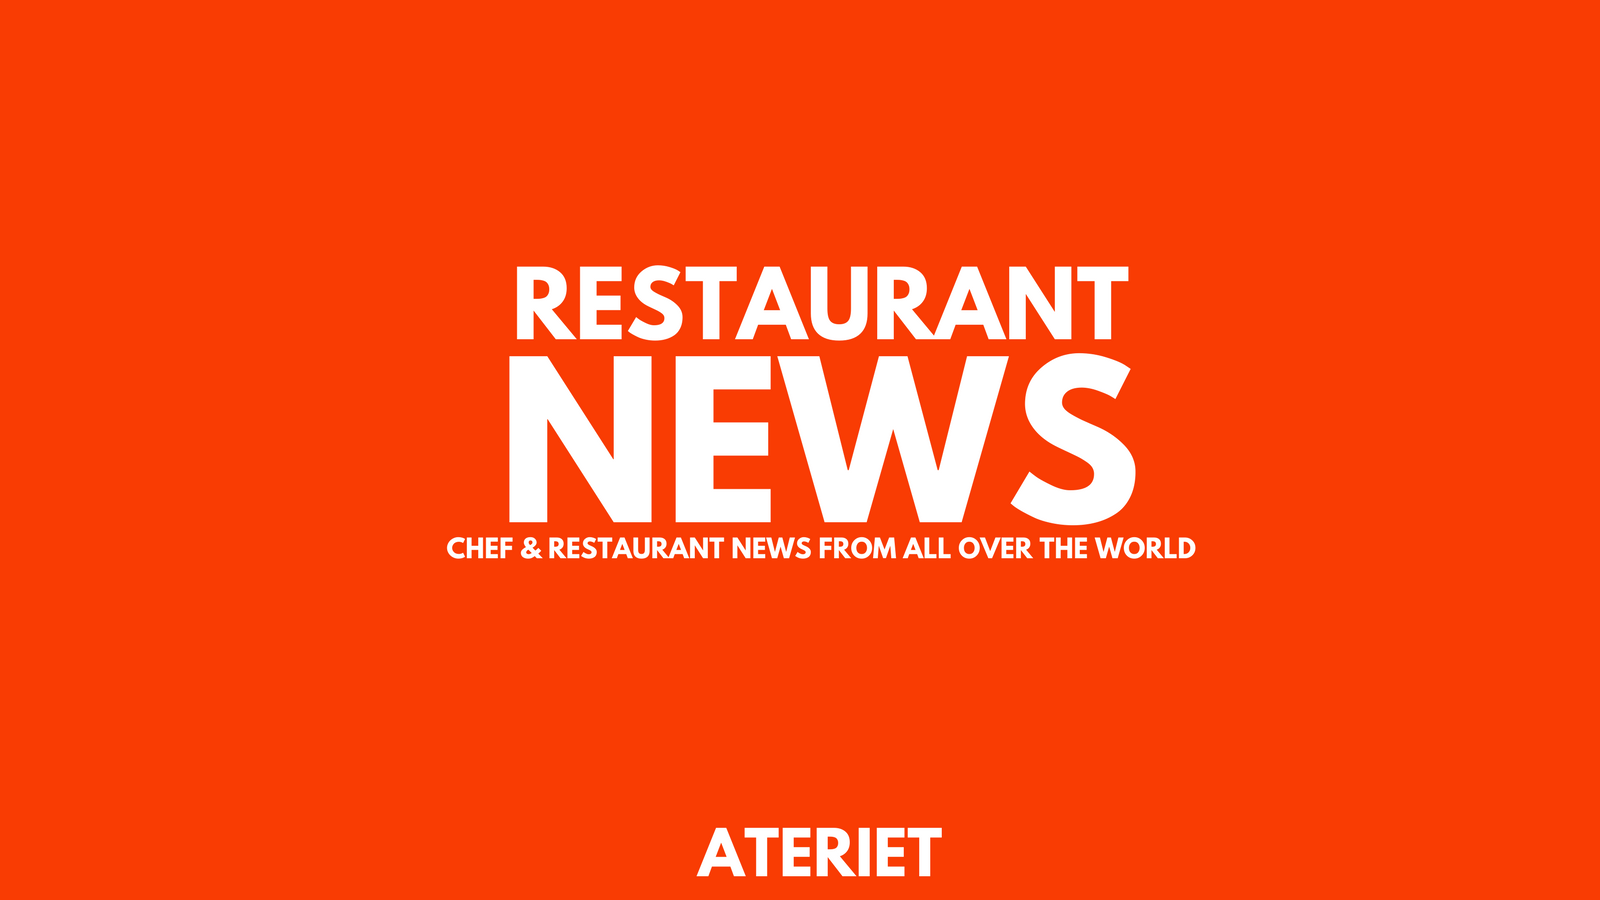 Restaurant News March 16th 2018